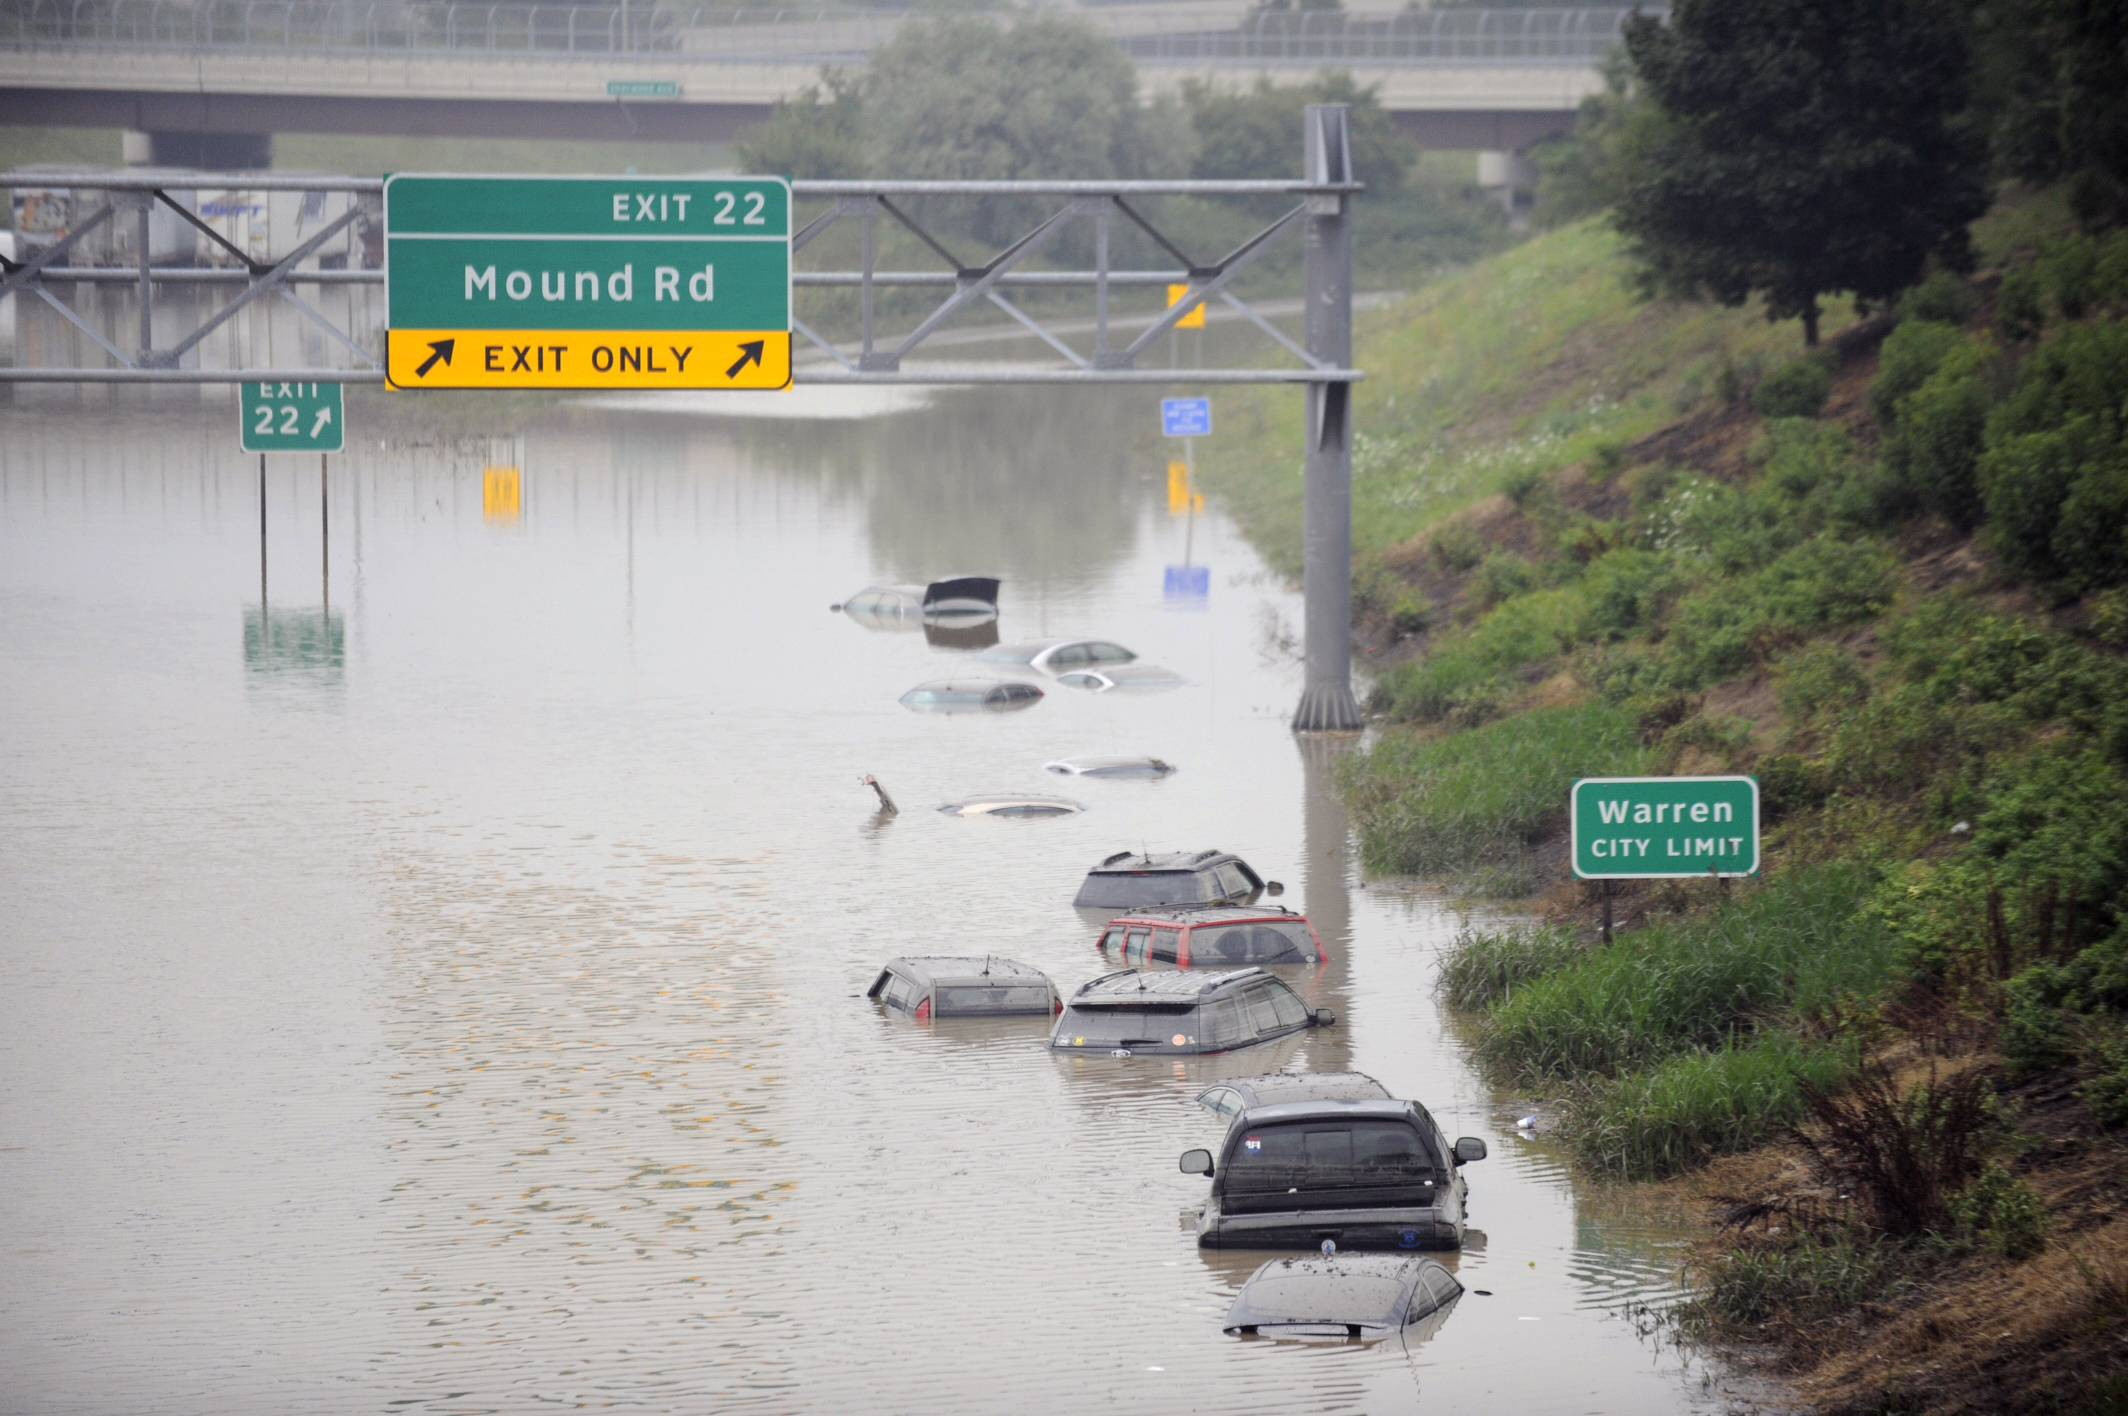 Cars are stranded along a flooded stretch of I-696 at the Warren, Mich. city limits Tuesday morning, Aug. 12, 2014. Warren Mayor James Fouts said roughly 1,000 vehicles had been abandoned in floodwaters in the suburb where many roads were closed after 5.2 inches of rain fell Monday.